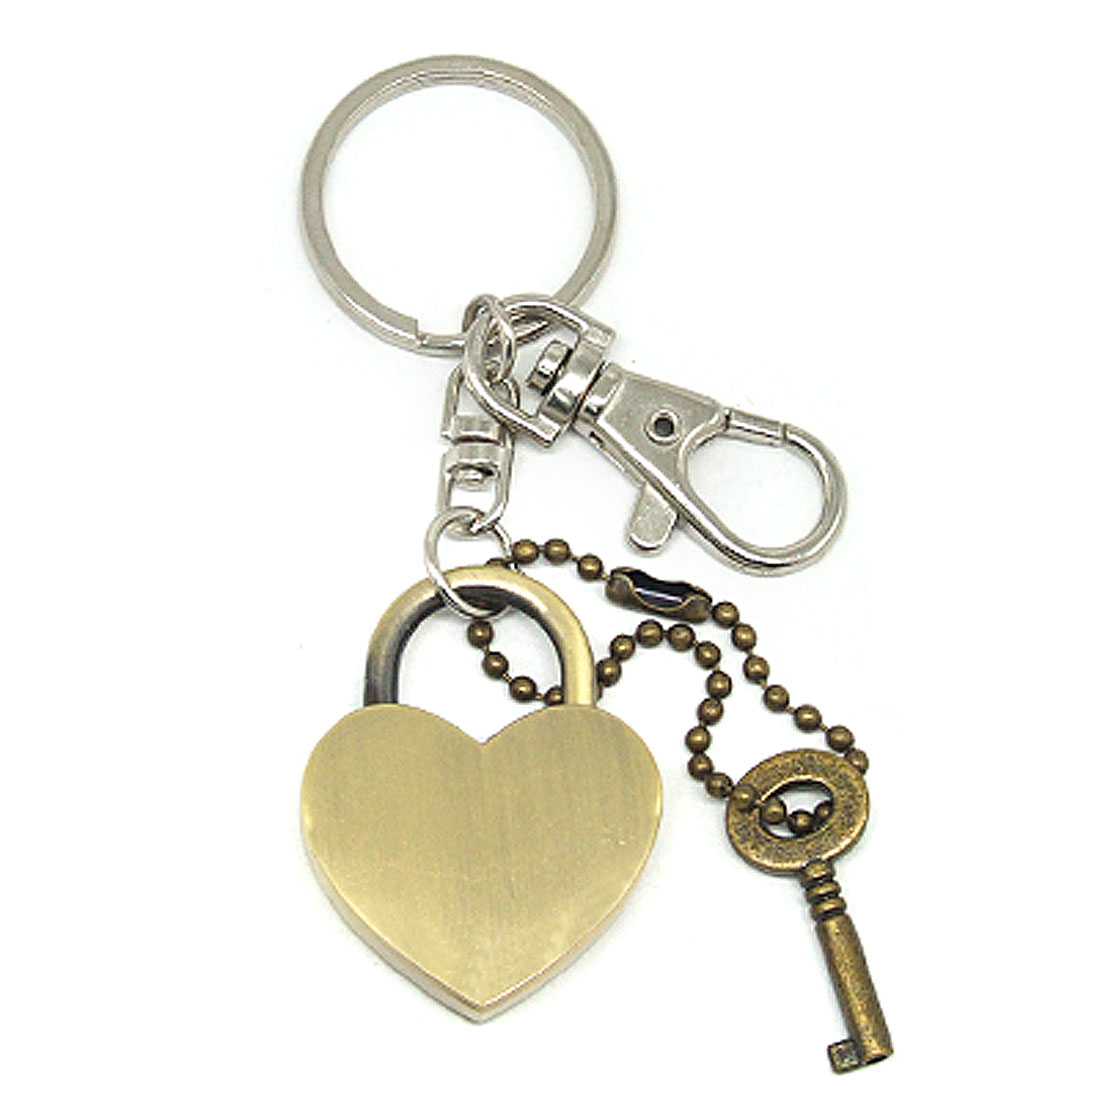 Heart Shape Lock & Key Keychain Key Ring Chain Handbag Purse Charm